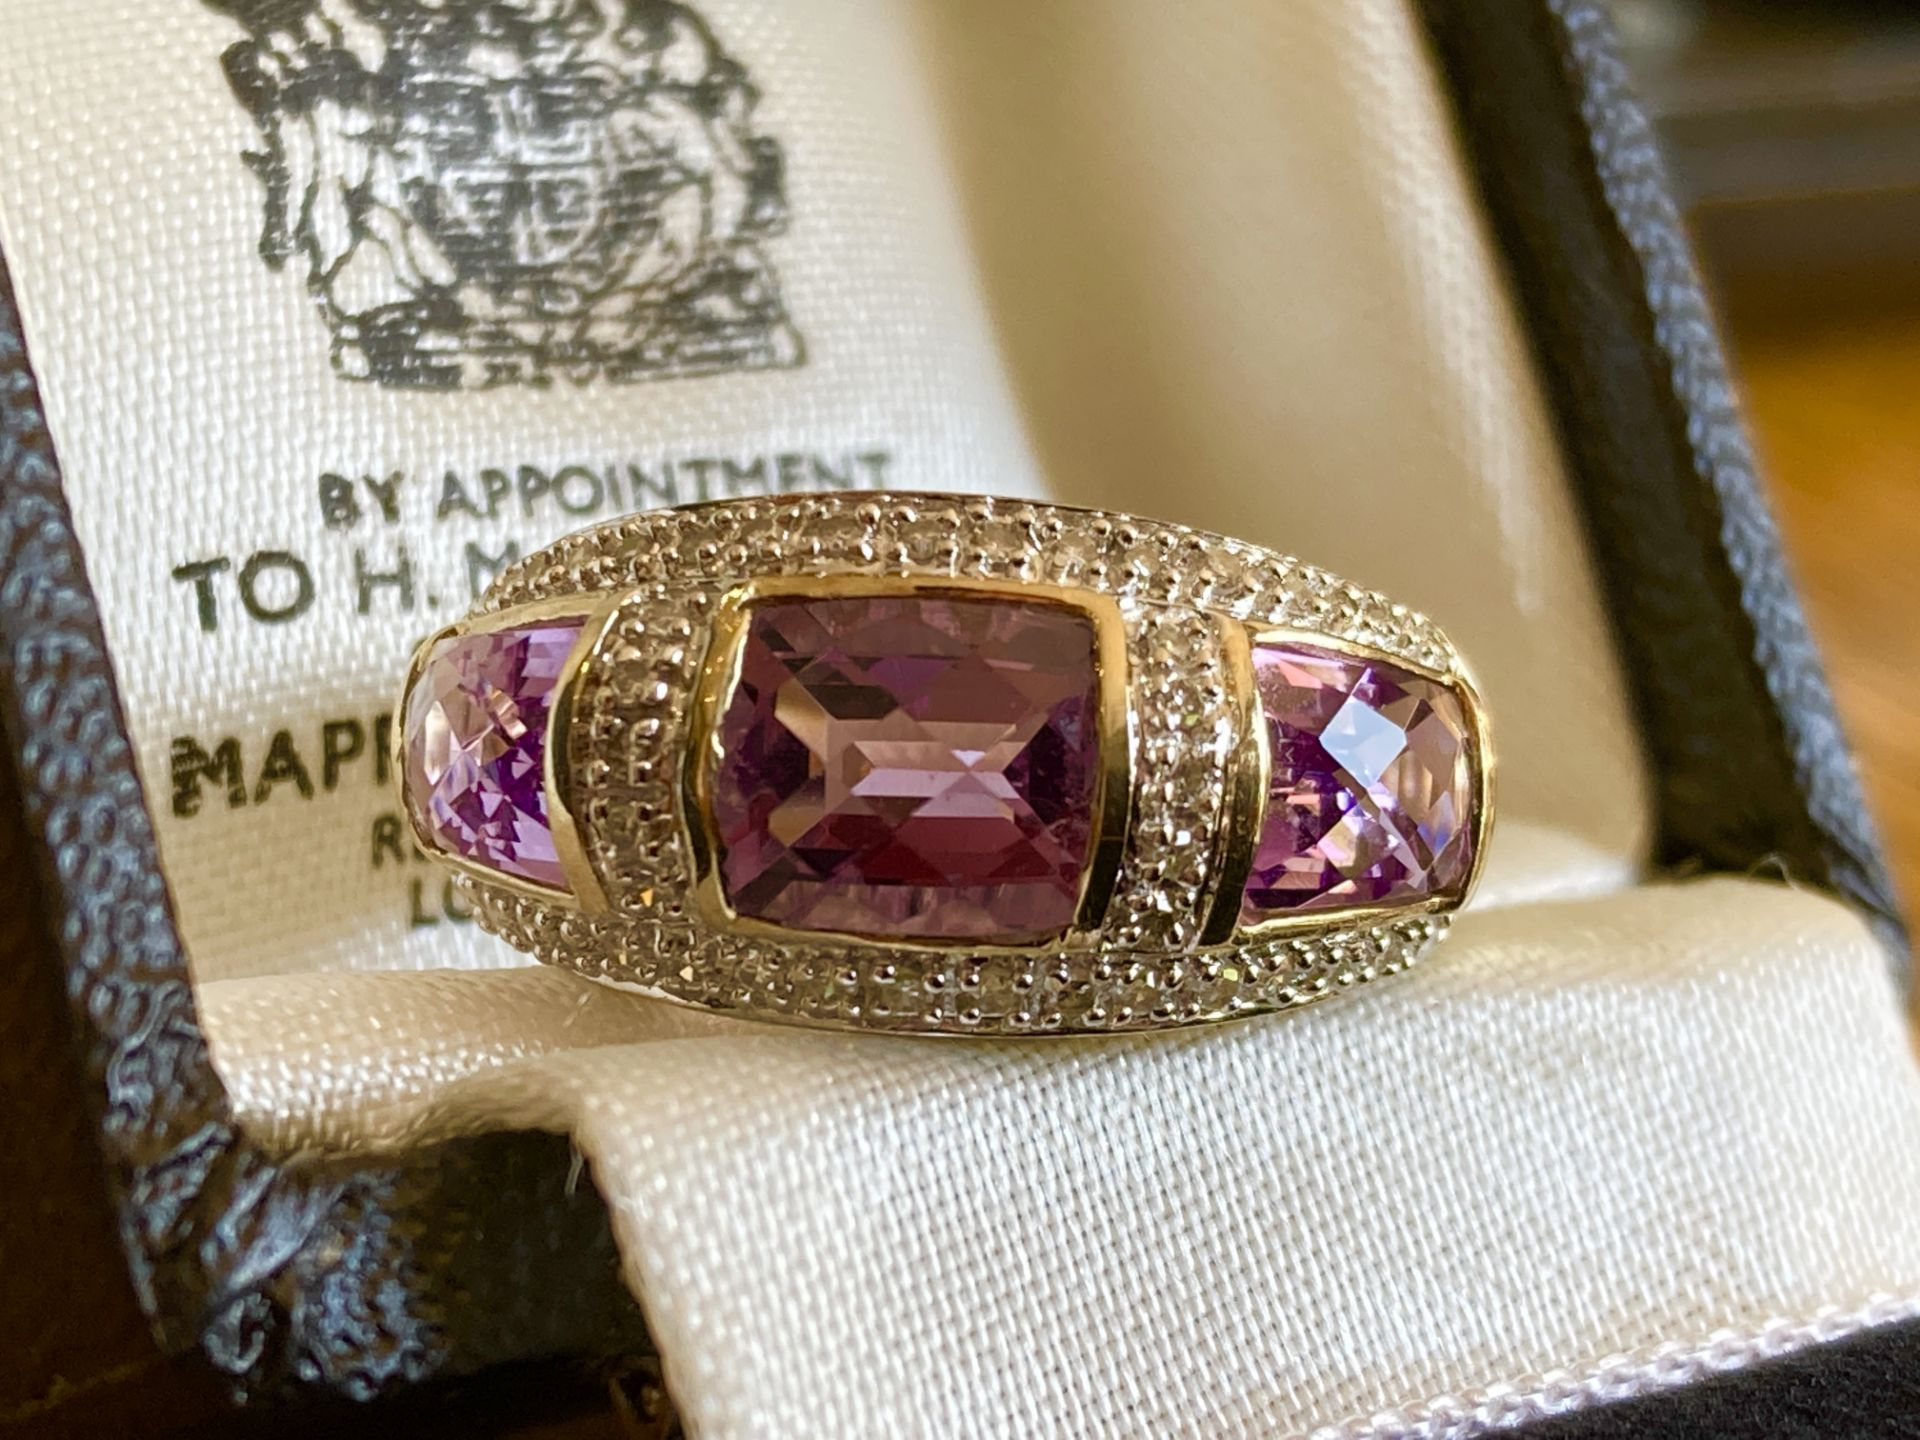 9CT YELLOW GOLD AMETHYST & DIAMOND RING - SIZE: S / WEIGHT: 3.5G - Image 8 of 9